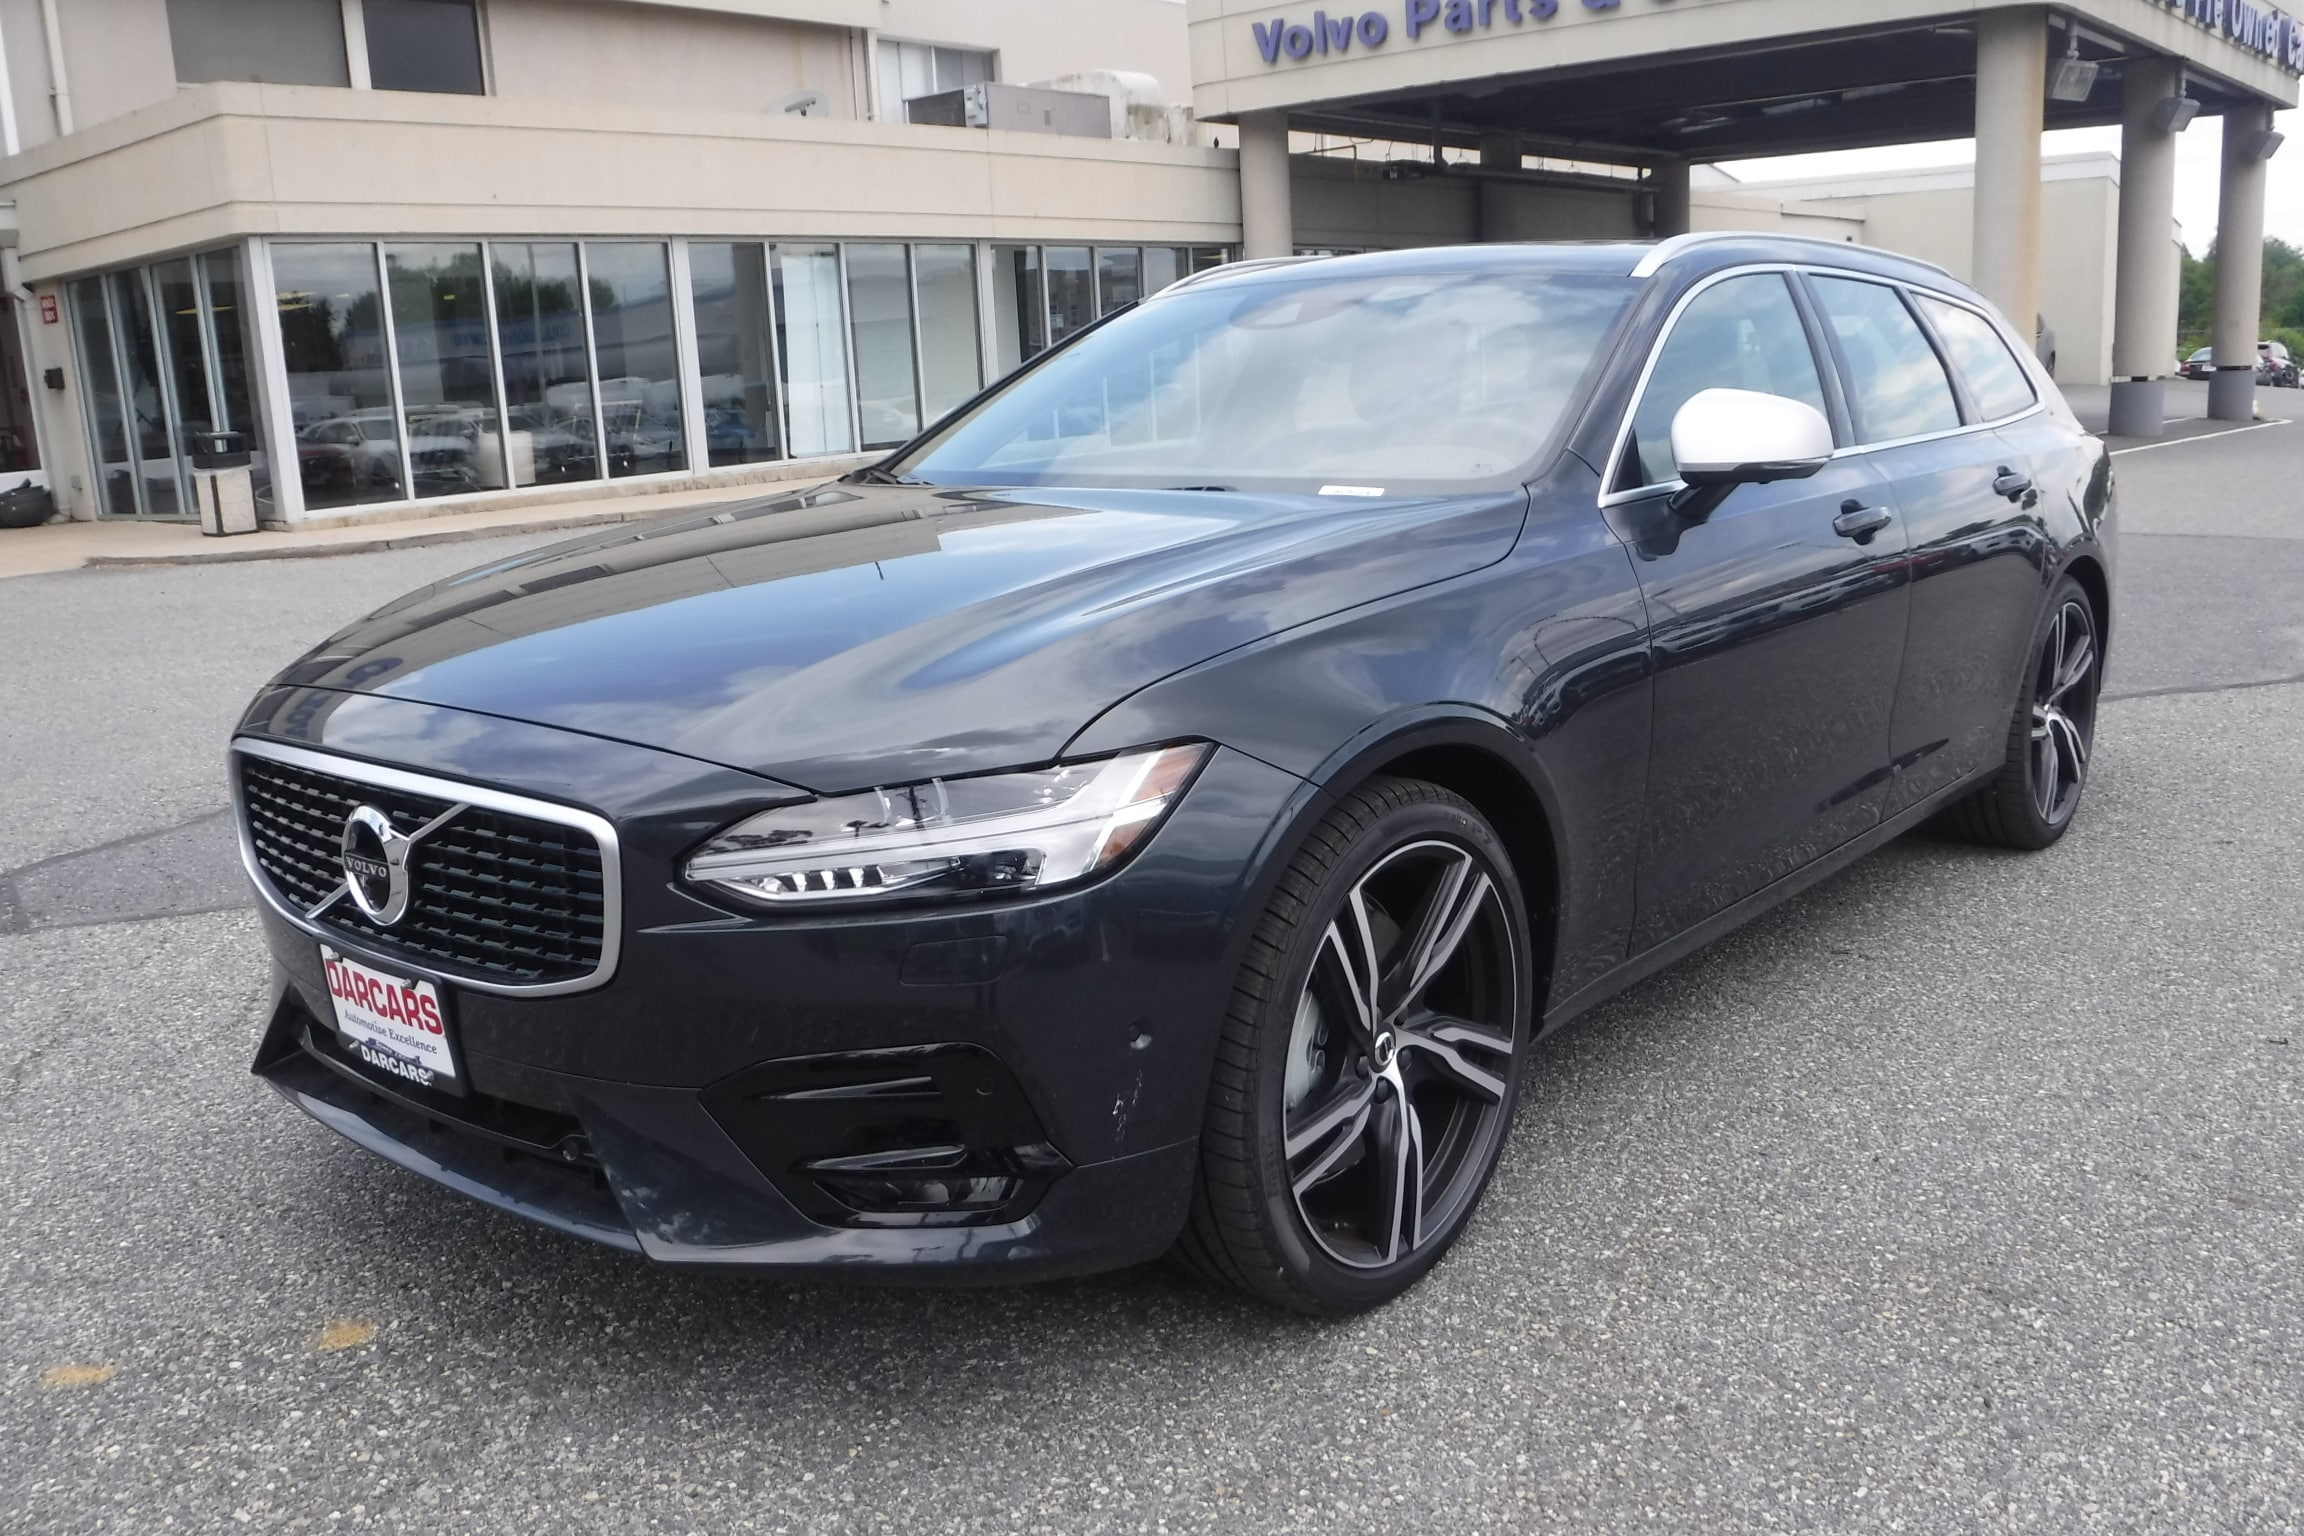 new volvo specials in rockville  md  darcars volvo cars